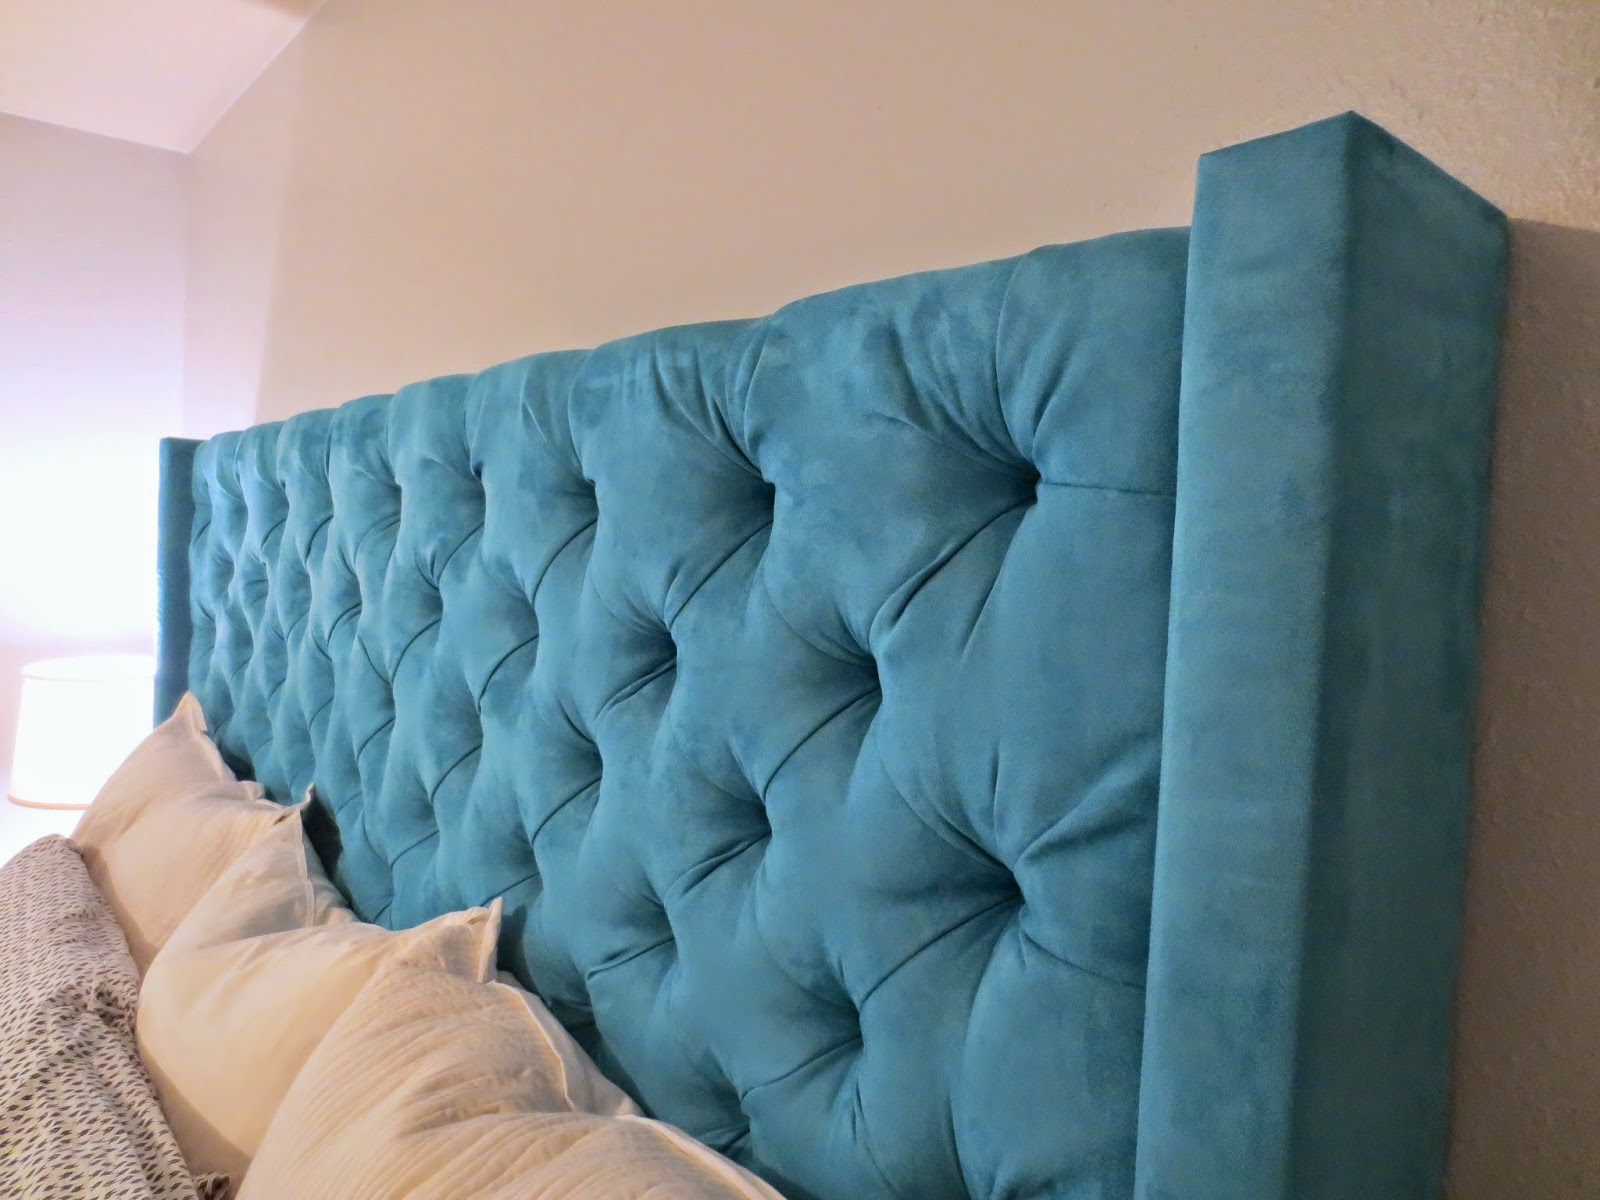 We Achieved The Look Of A High End Diamond Tufted Headboard For Fraction Cost I Think In Total Project About 200 250